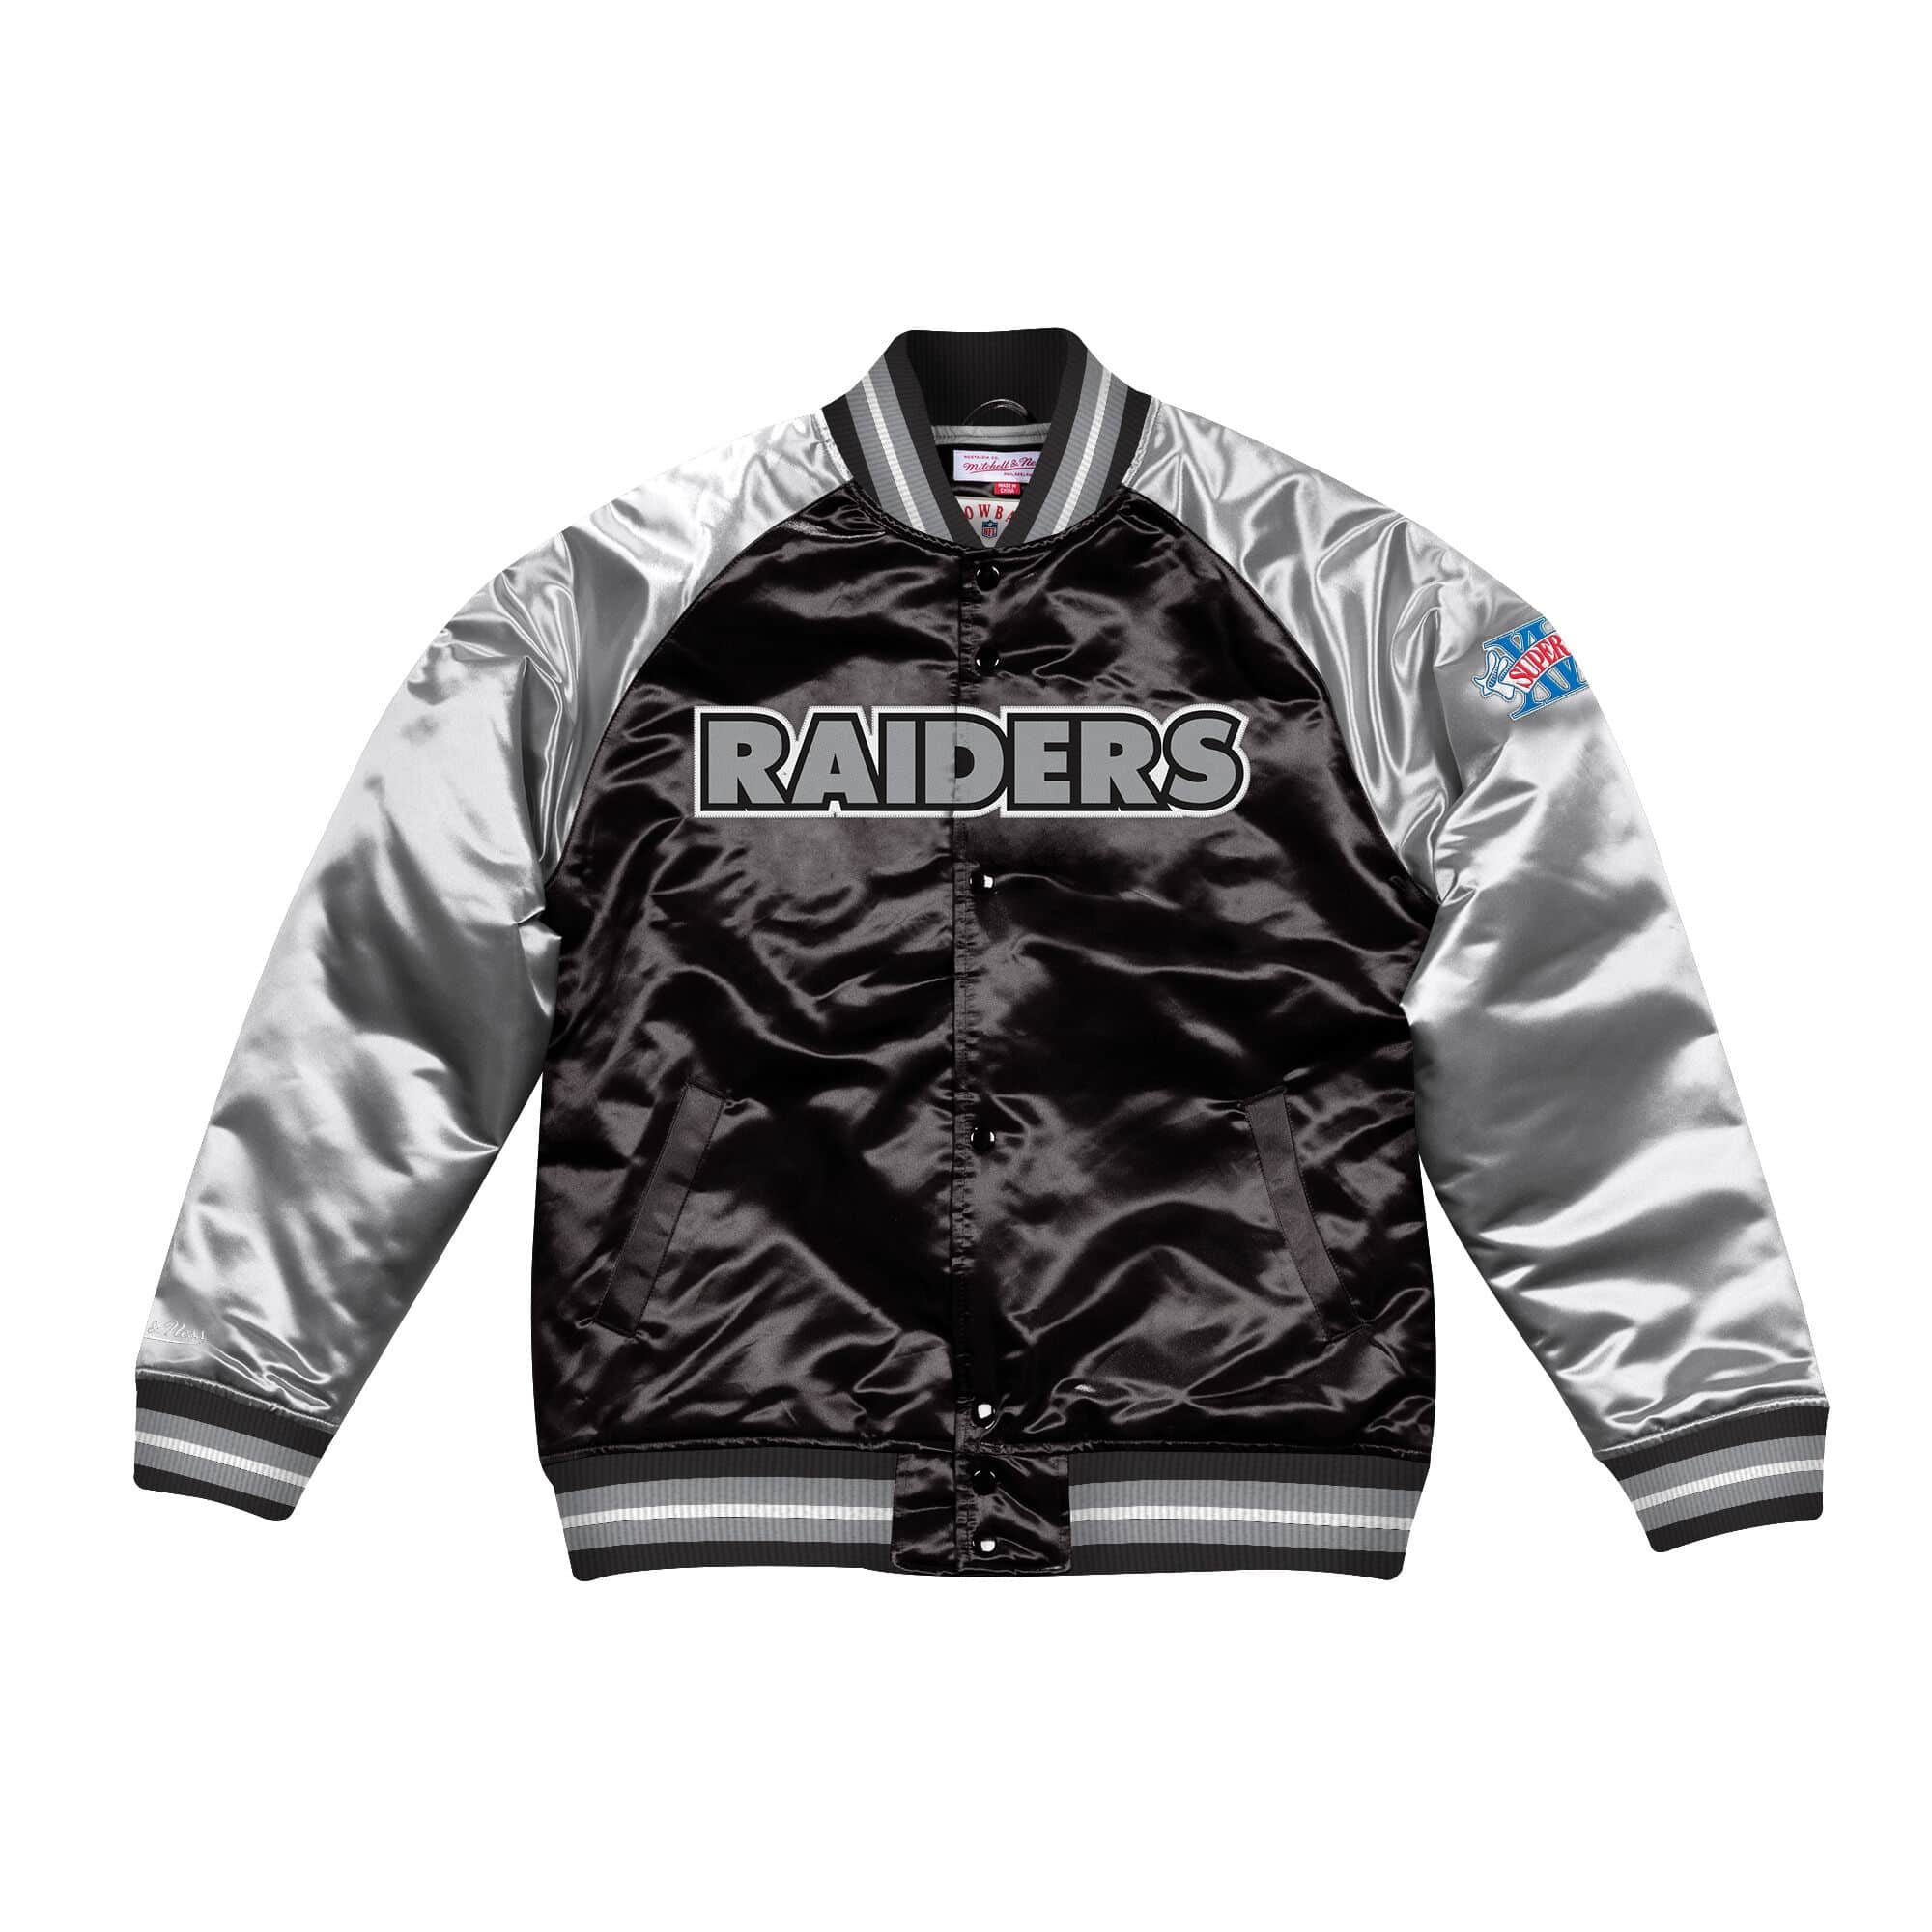 Tough Season Satin Jacket Oakland Raiders